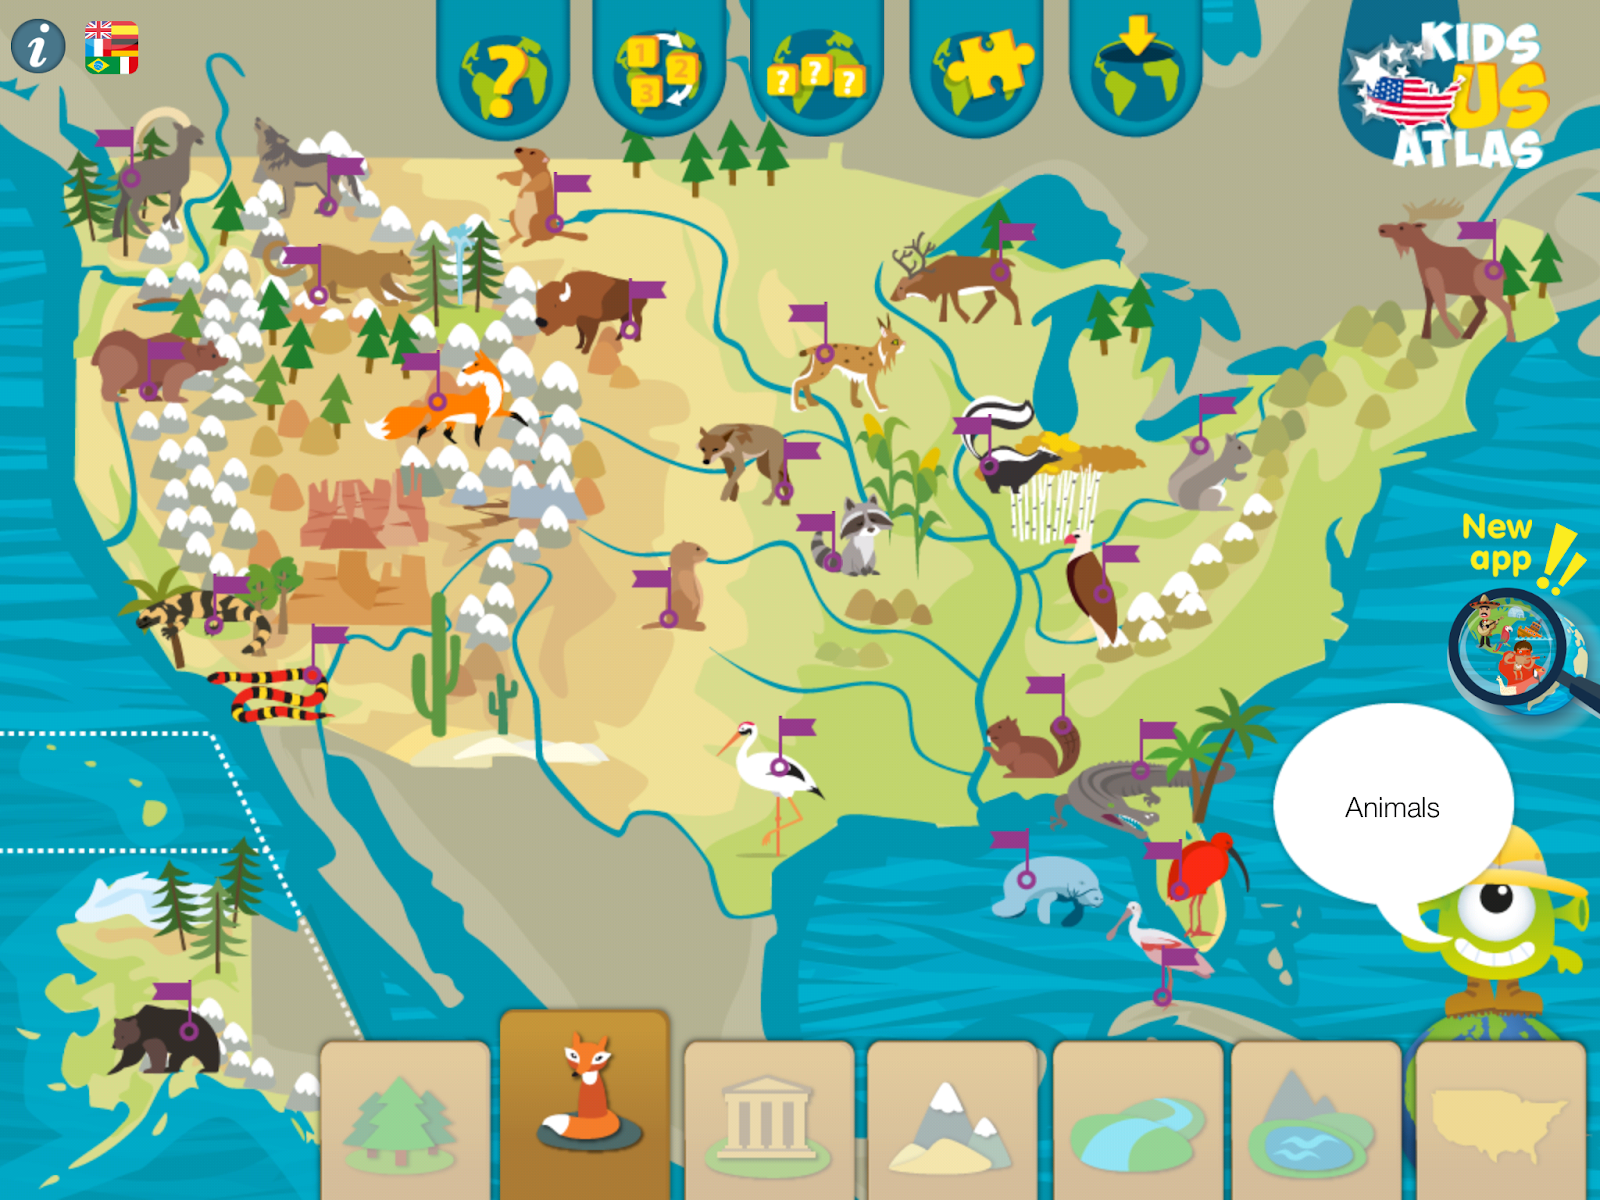 Interactive United States Map Quiz, Kids Us Atlas Provides A Nice Way For Elementary School Students To Learn About Animals Indigenous To The United States A Follow Up Activity To Students, Interactive United States Map Quiz